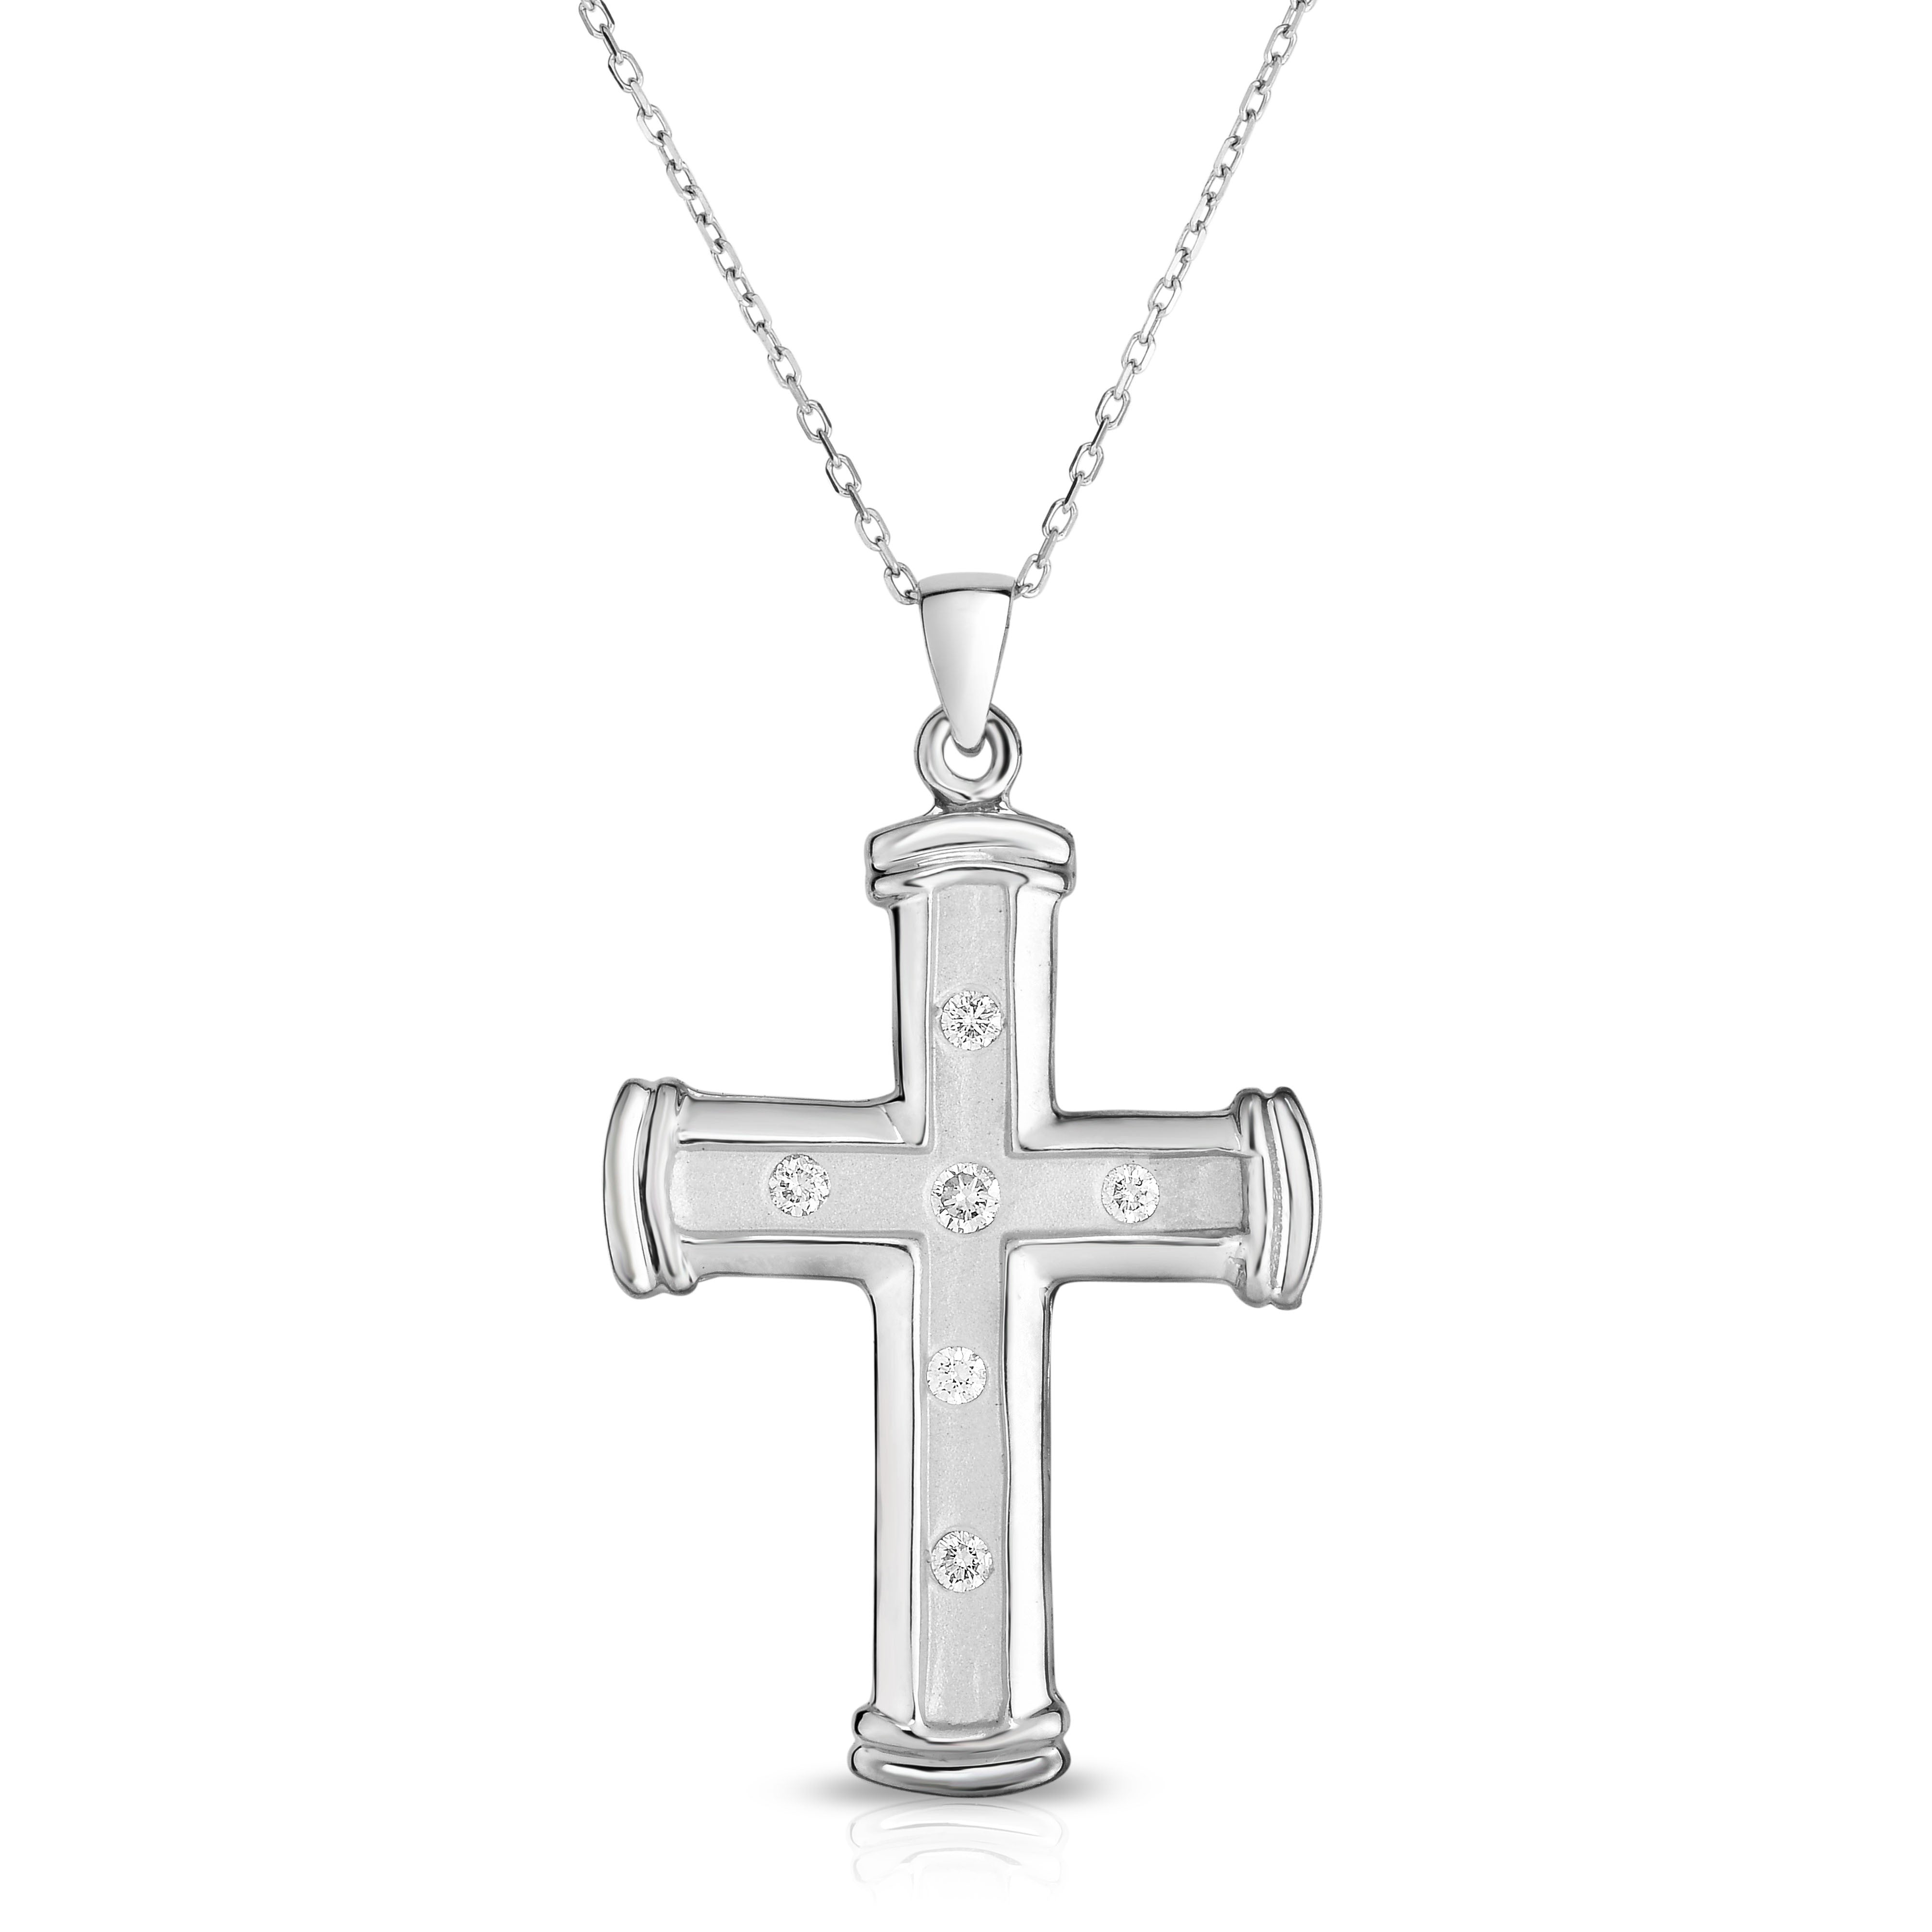 14k white gold diamond cross pendant 025 ct g h color si2 i1 14k white gold diamond cross pendant 025 ct g h color si2 i1 clarity with 18 gold chain mozeypictures Choice Image